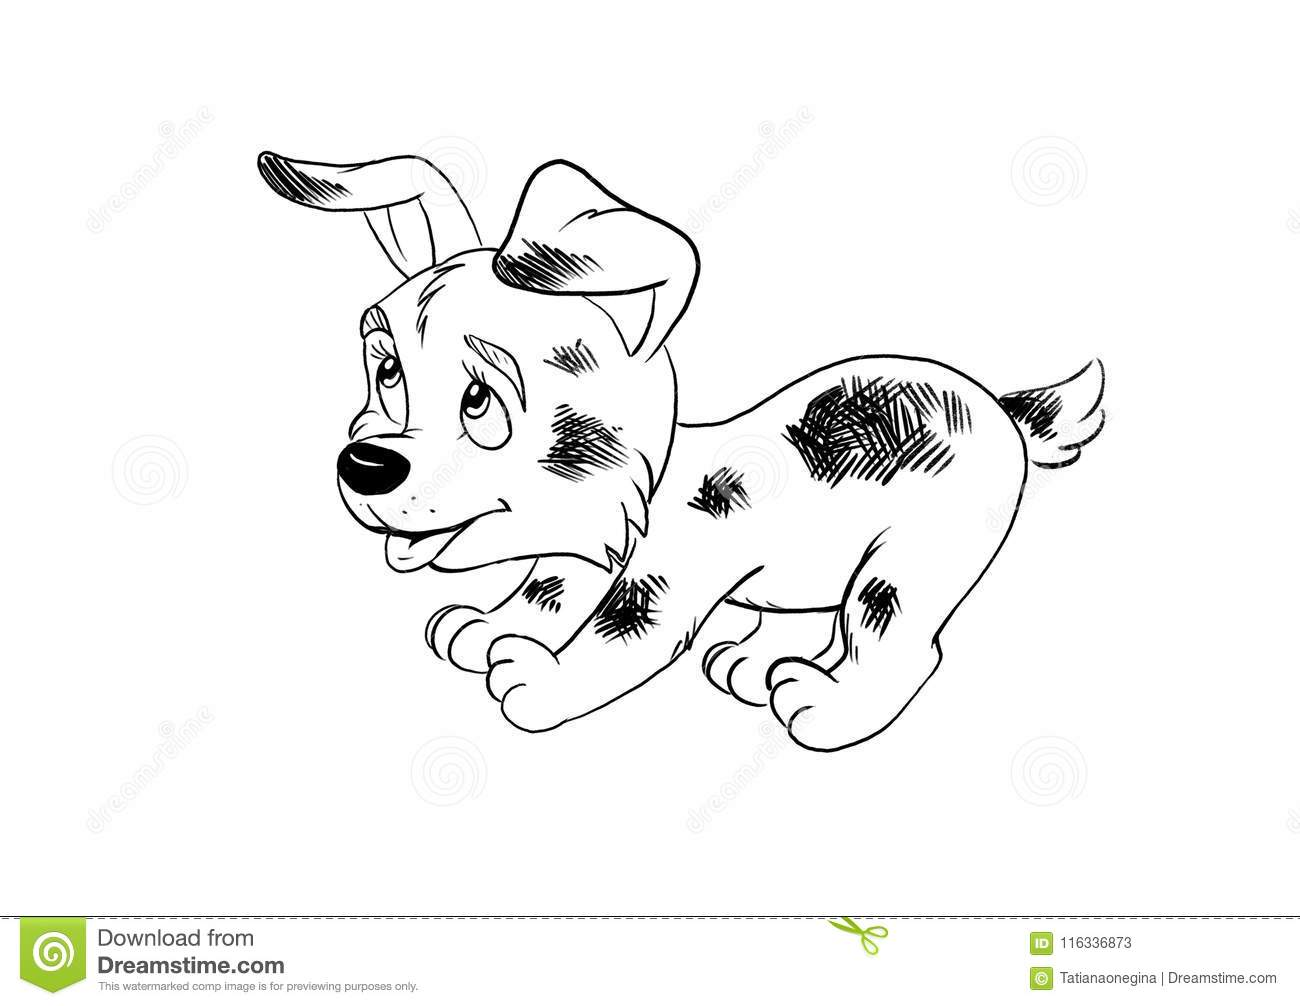 Cartoon drawing for coloring book with dalmatianbreed puppy